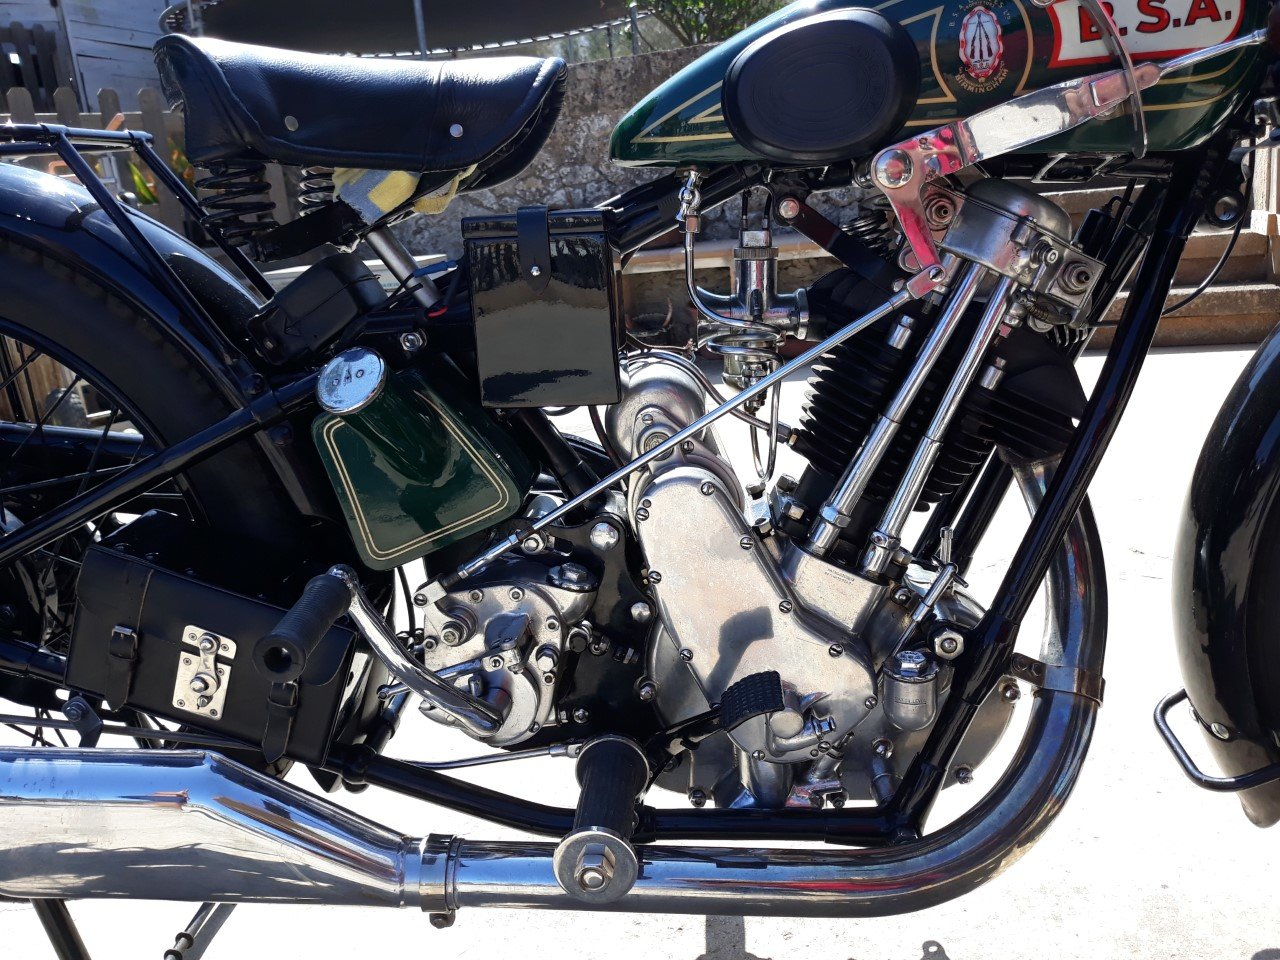 1927 BSA  S27  Sloper  500cc. - restored For Sale (picture 4 of 6)